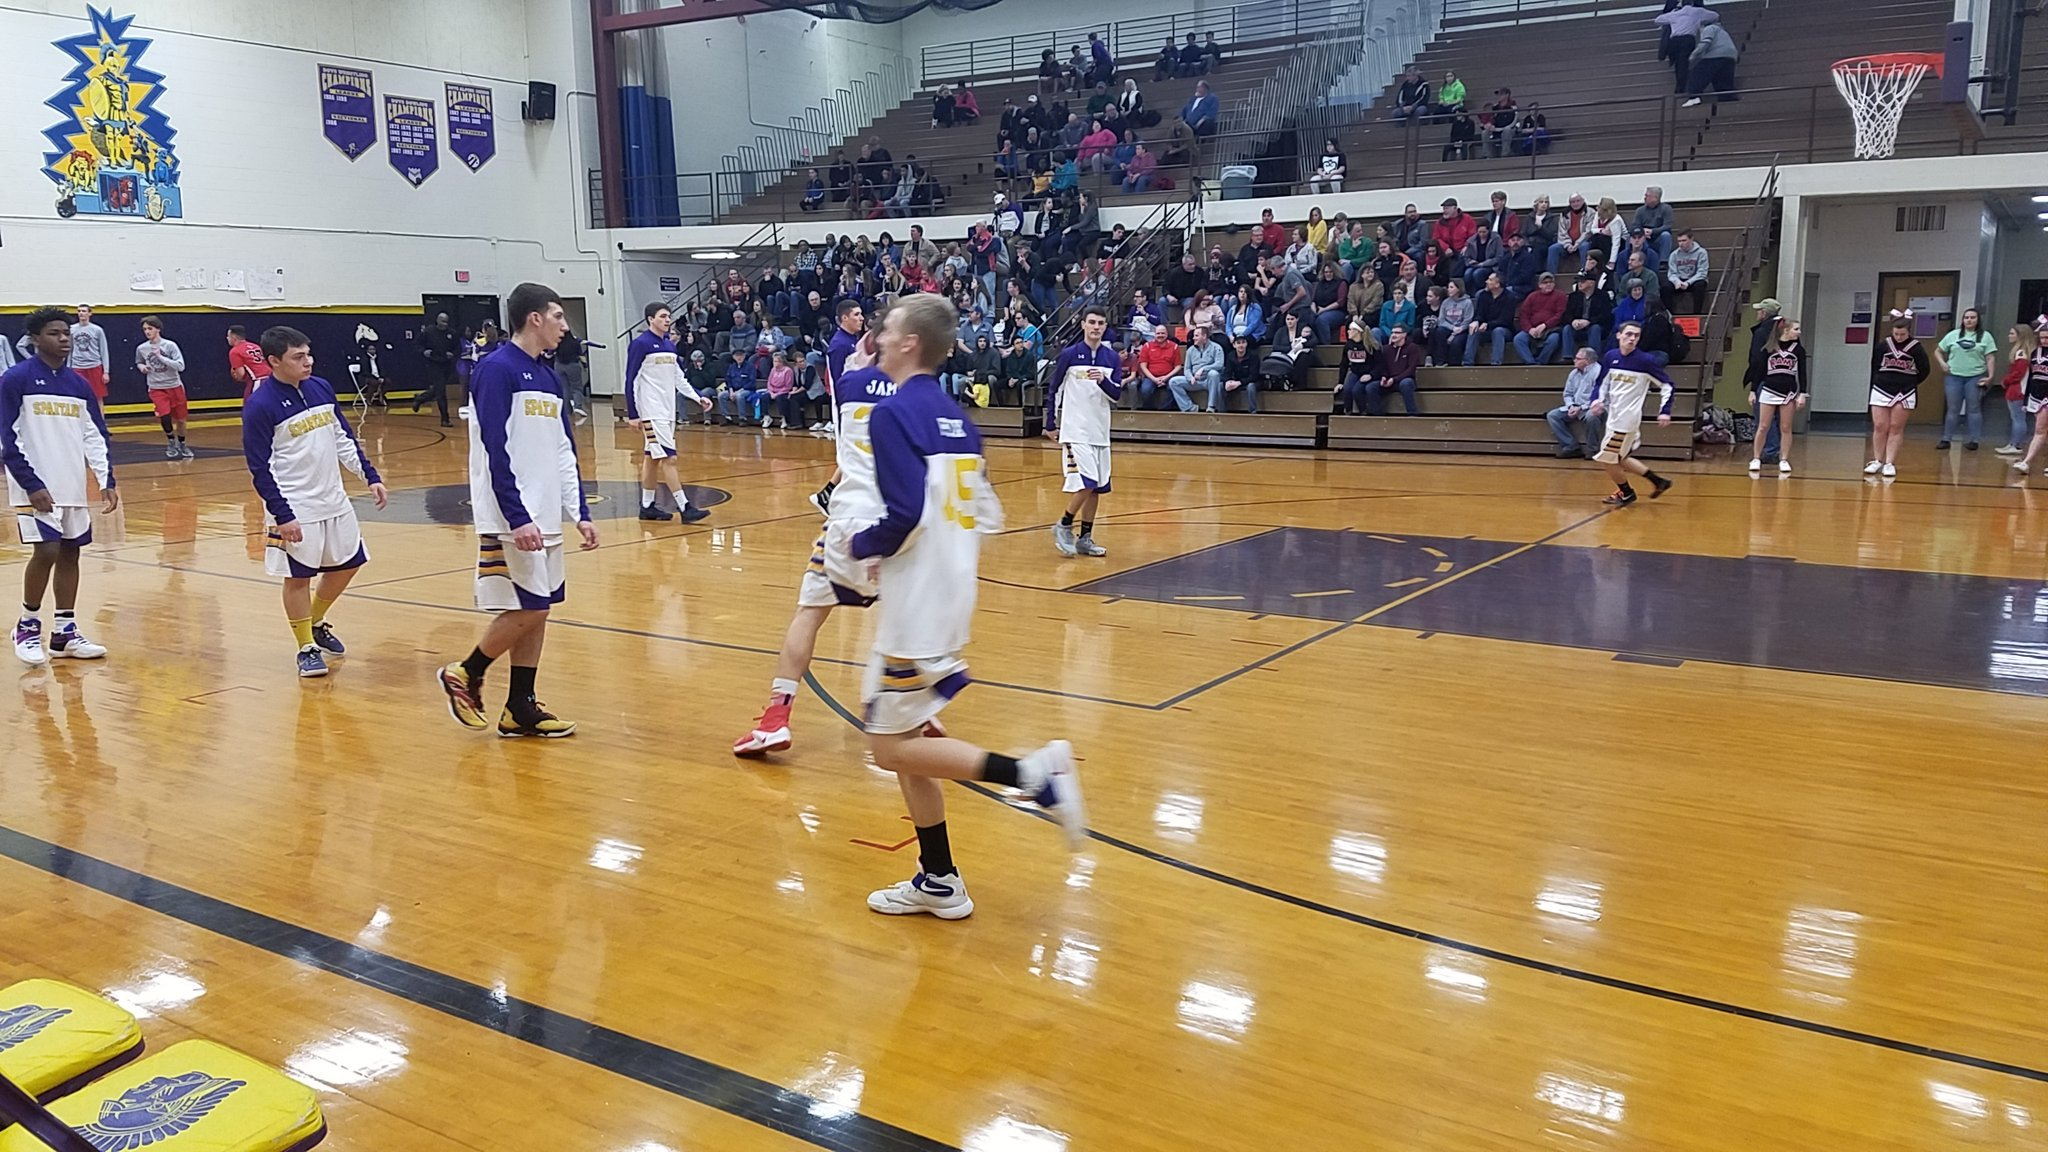 Big wins for W-FL teams on opening night of Sectional basketball (full coverage)